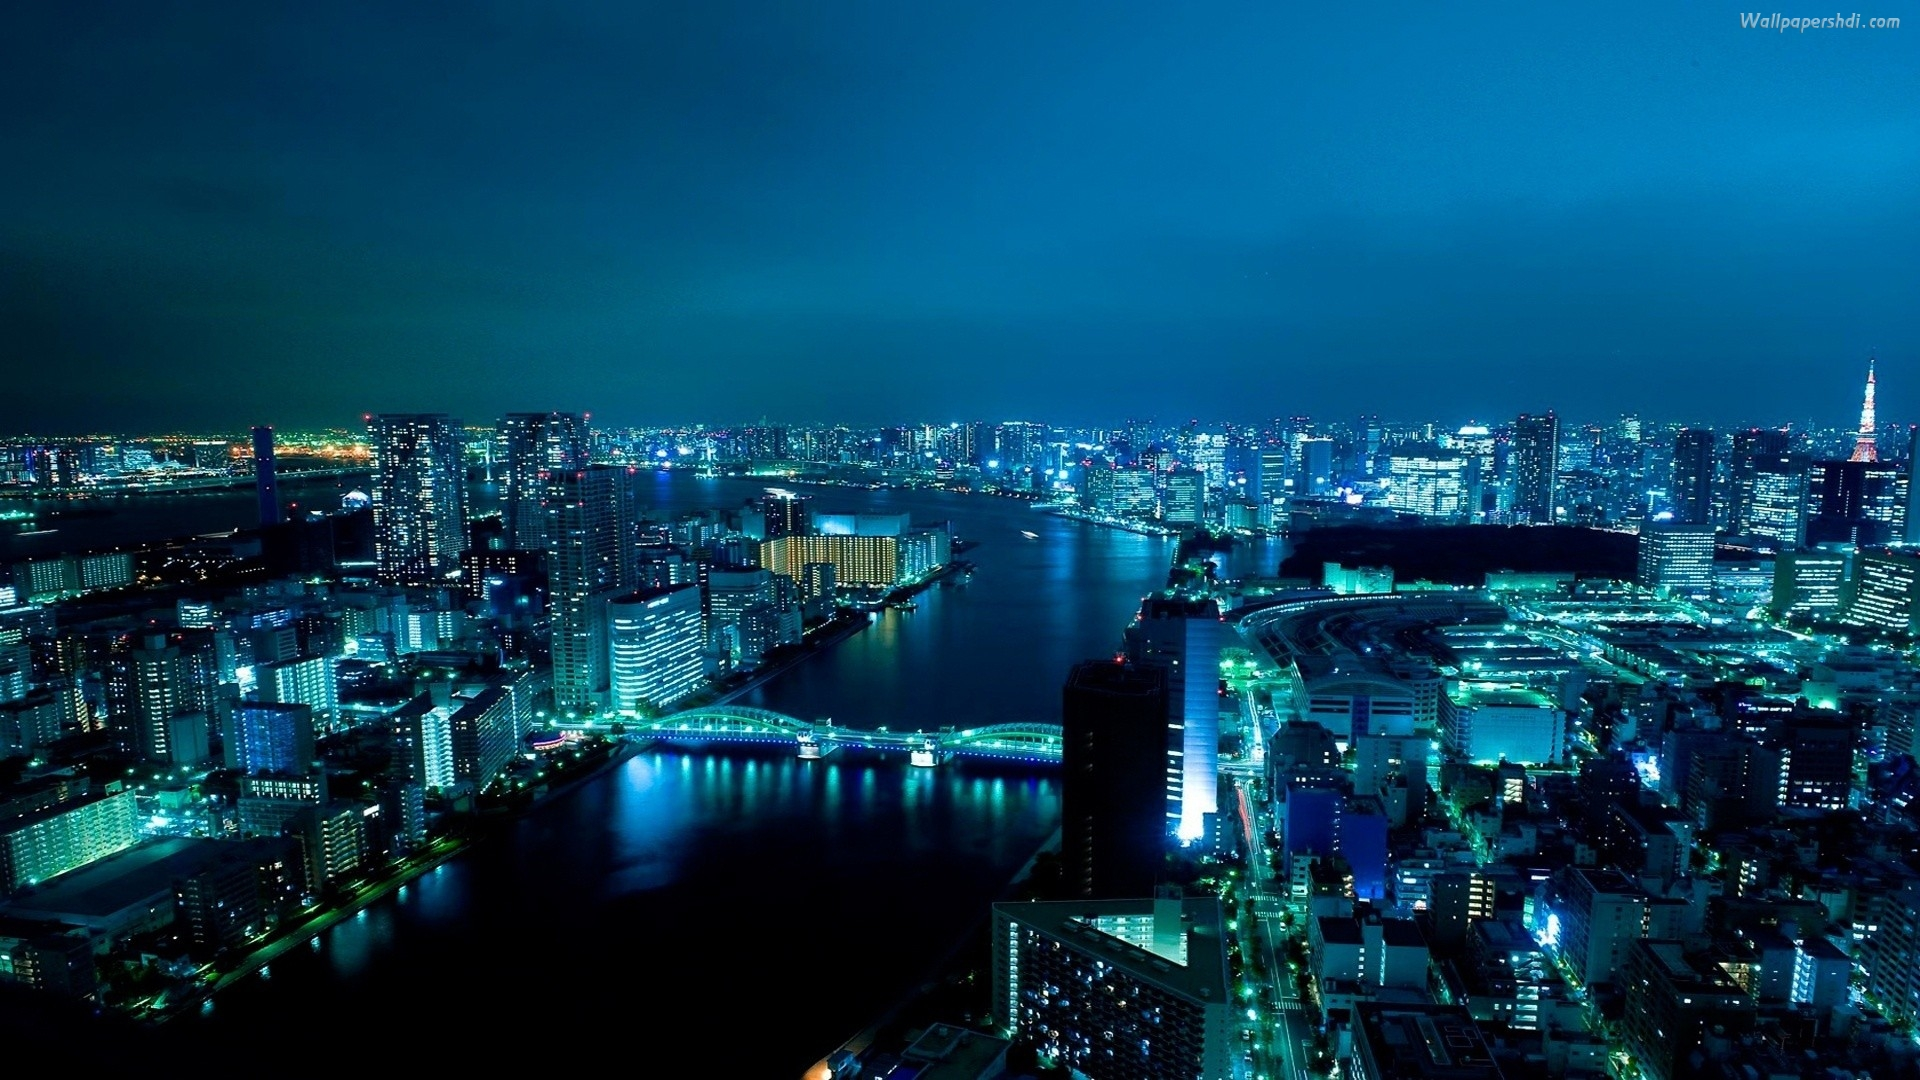 blue-city-wallpapers-background-hd